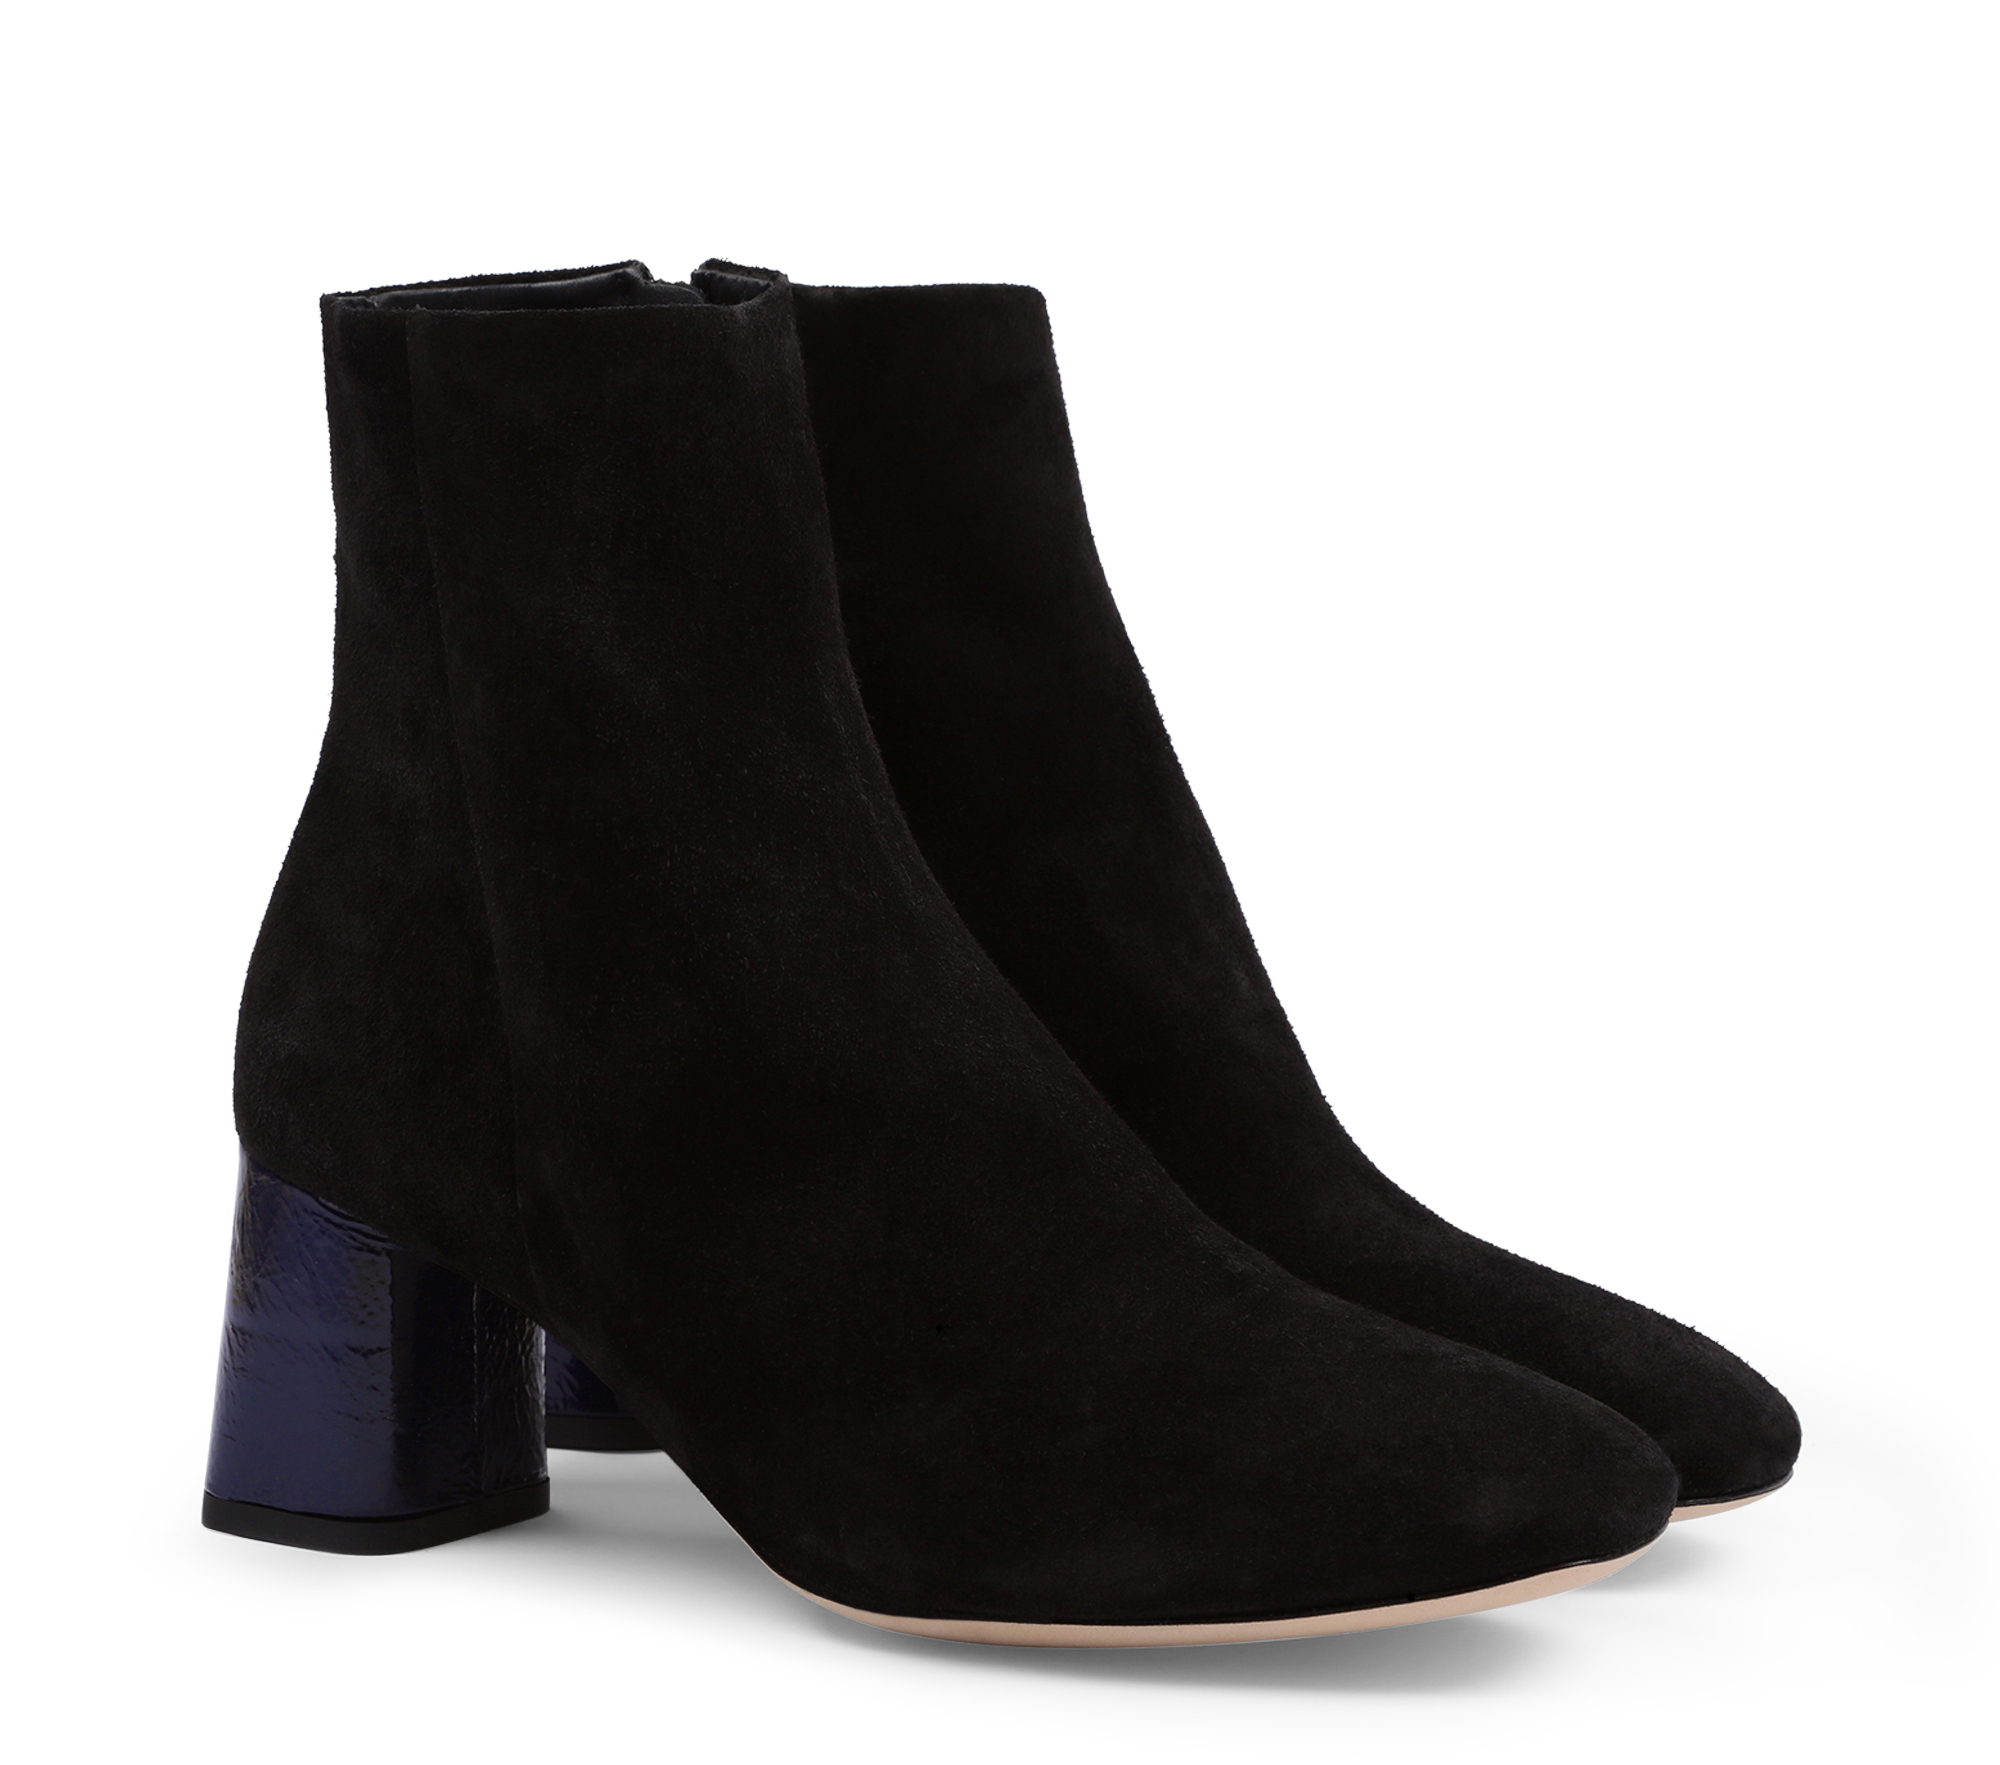 Melo boots